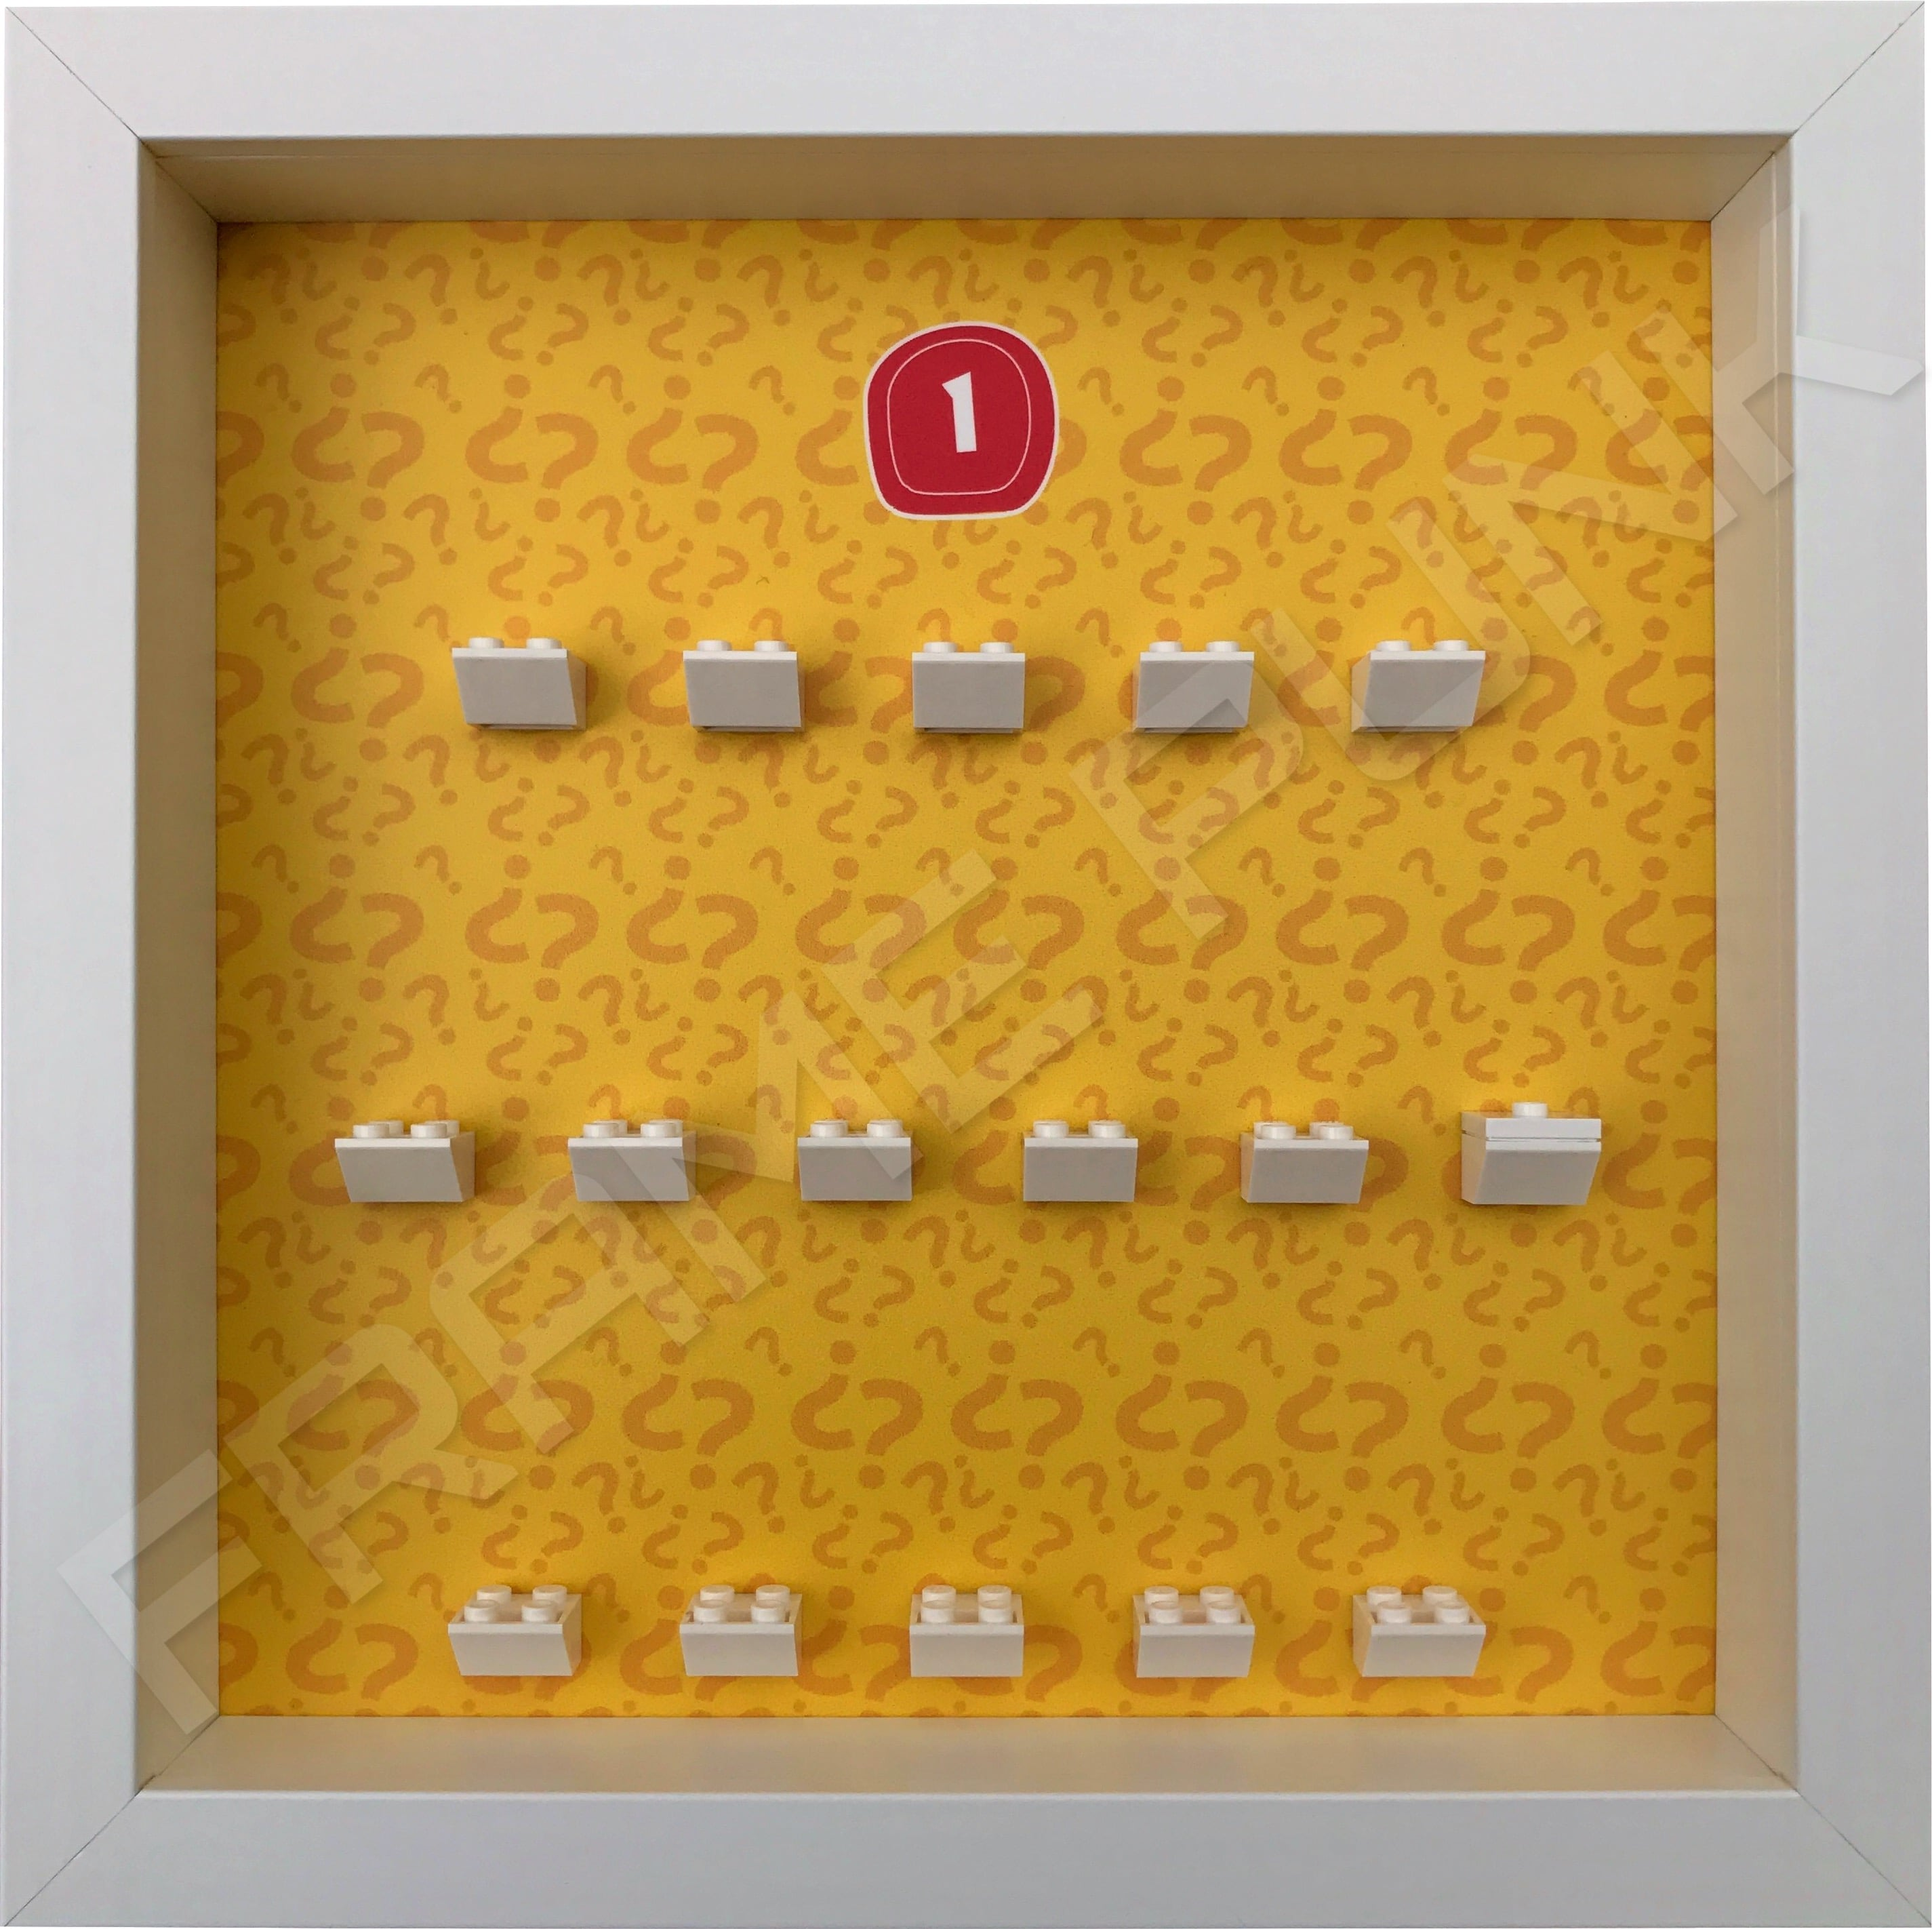 Lego minifigures series 1 display frame